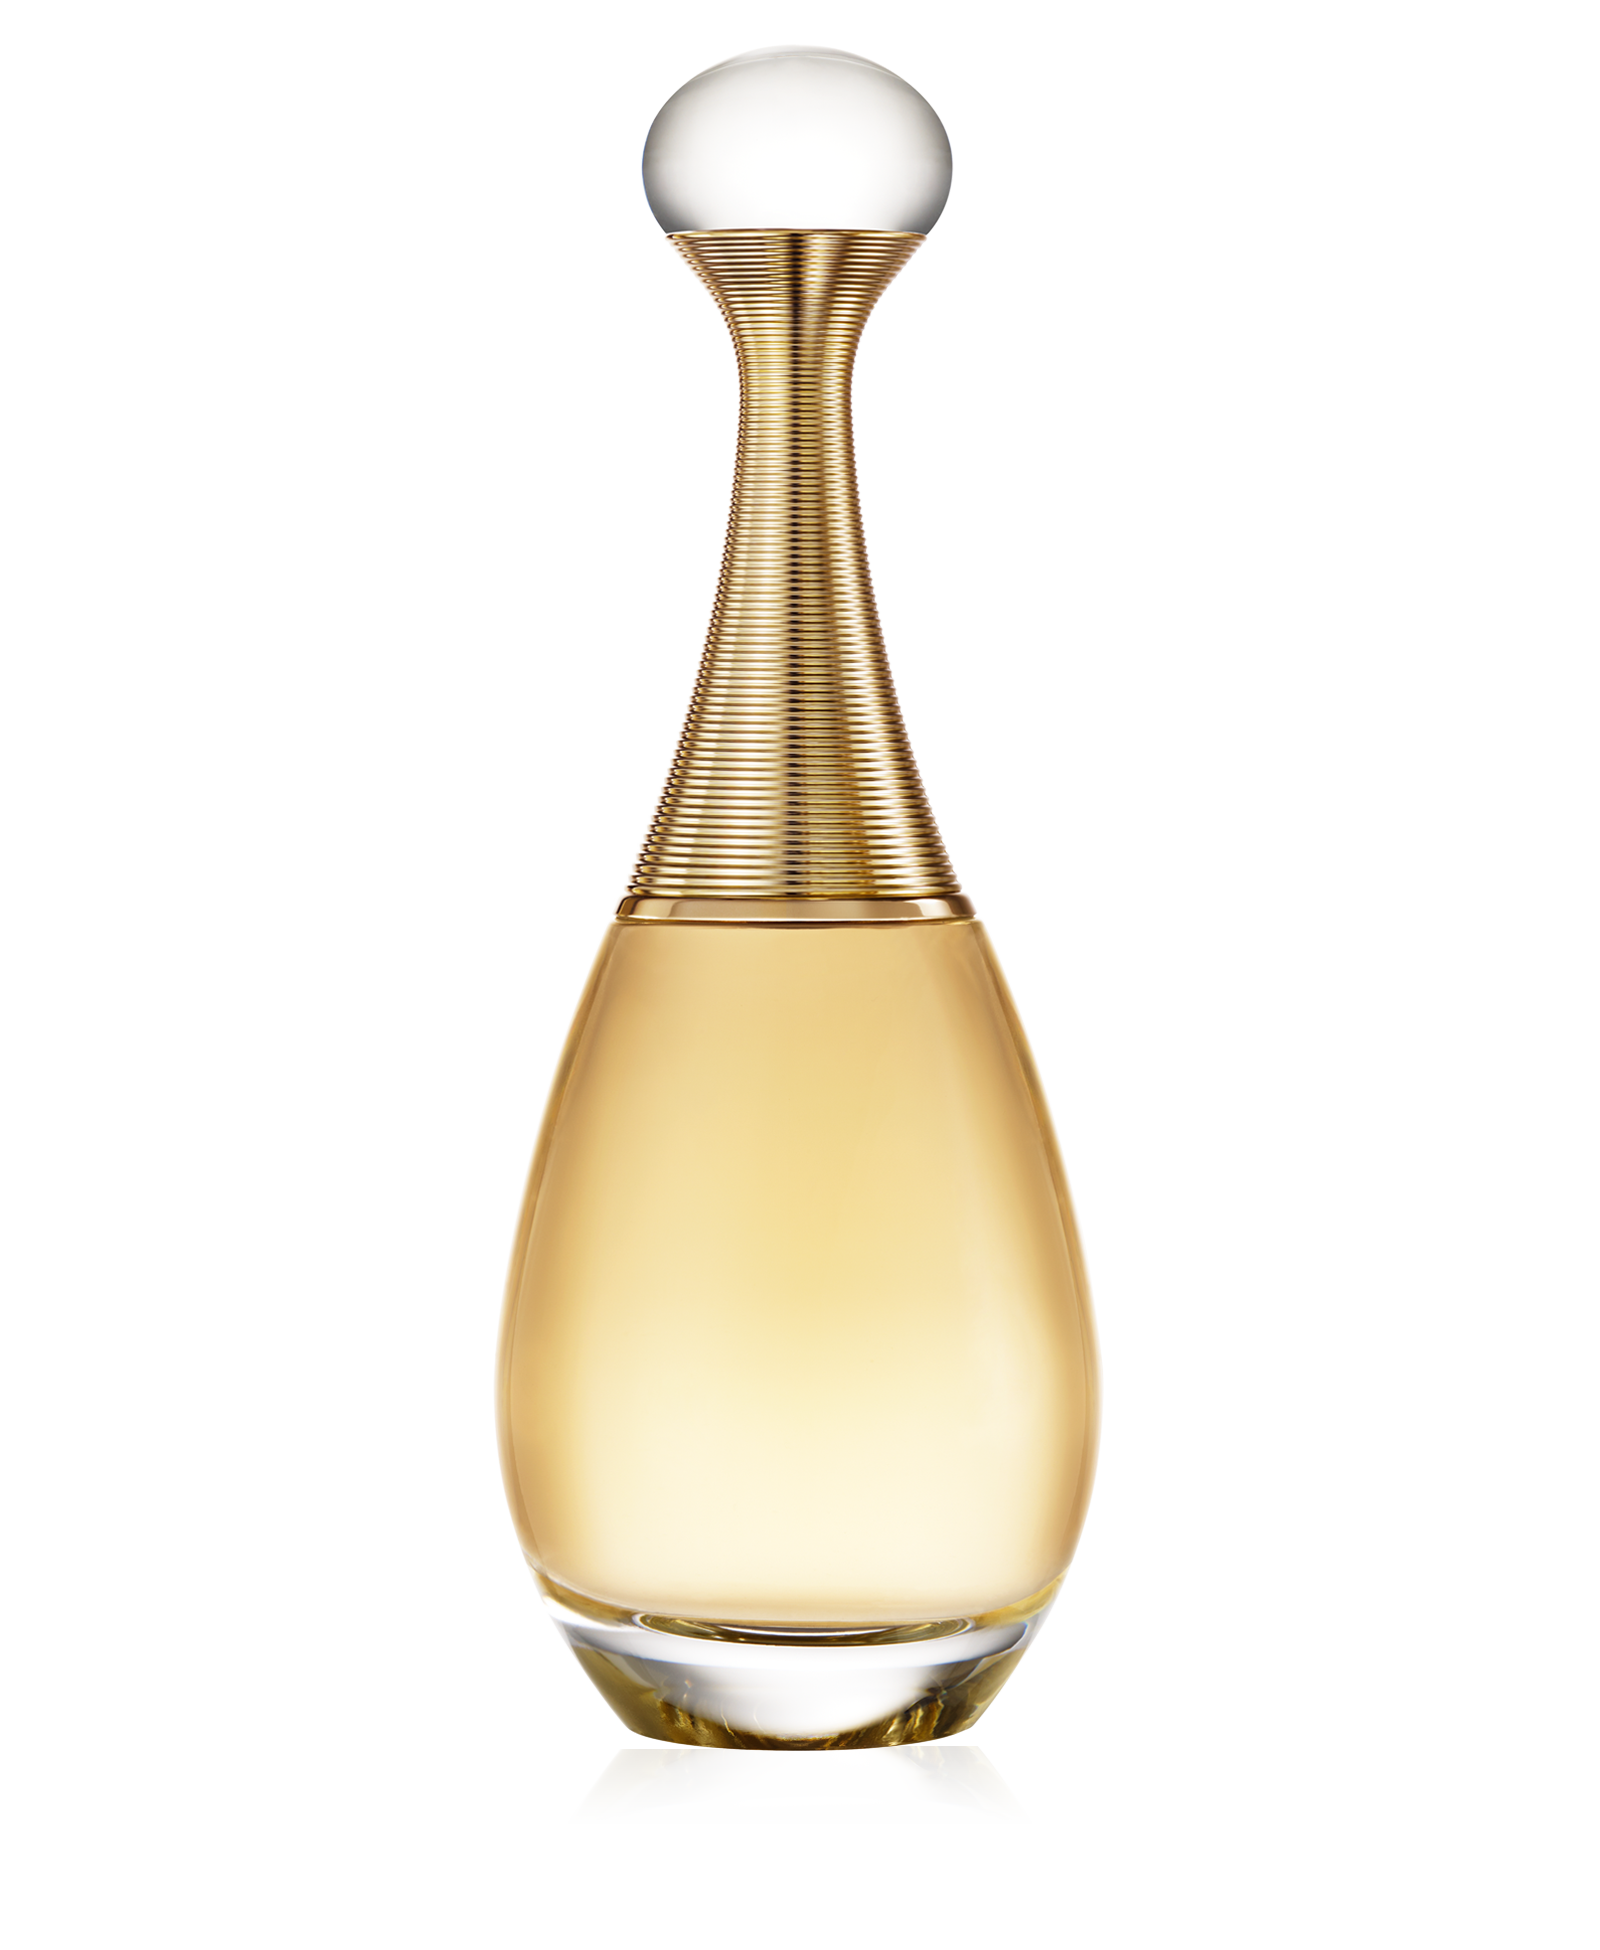 Perfume clipart perfume store. Png transparent images all